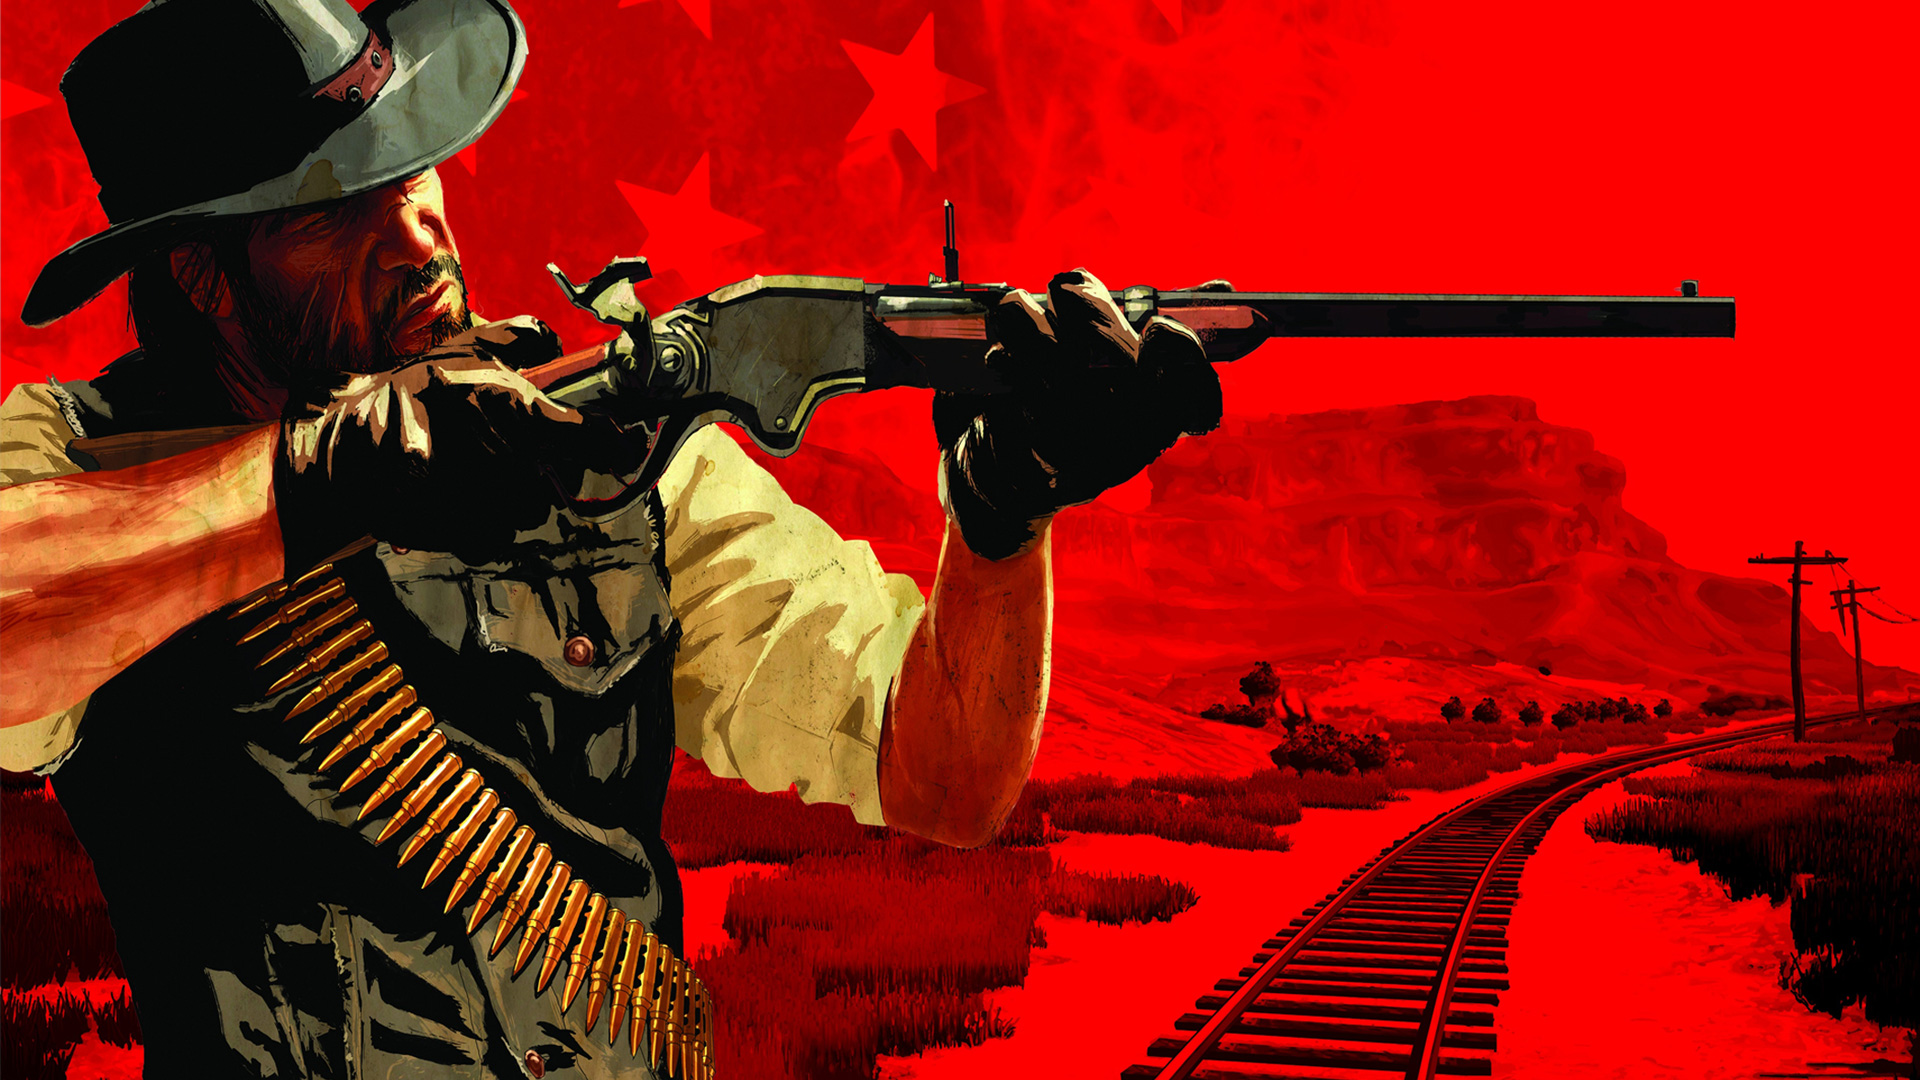 Red Dead Redemption 2 game map reportedly leaked